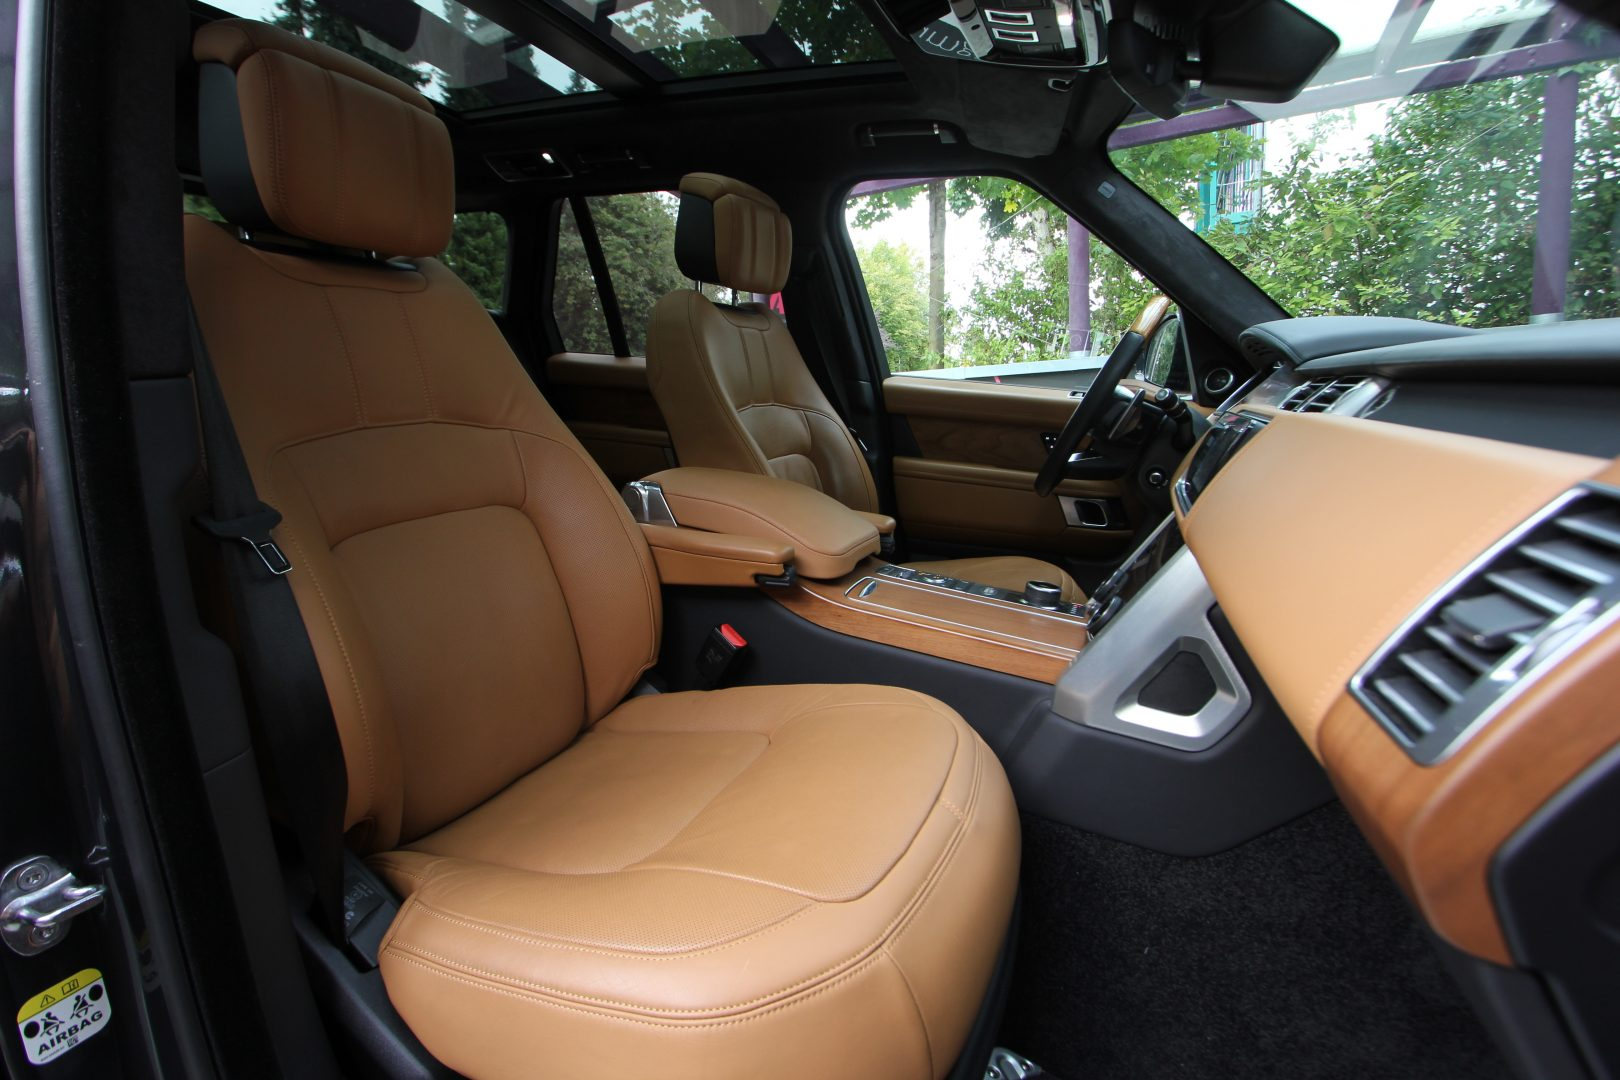 AIL Land Rover Range Rover SDV8 Autobiography 6